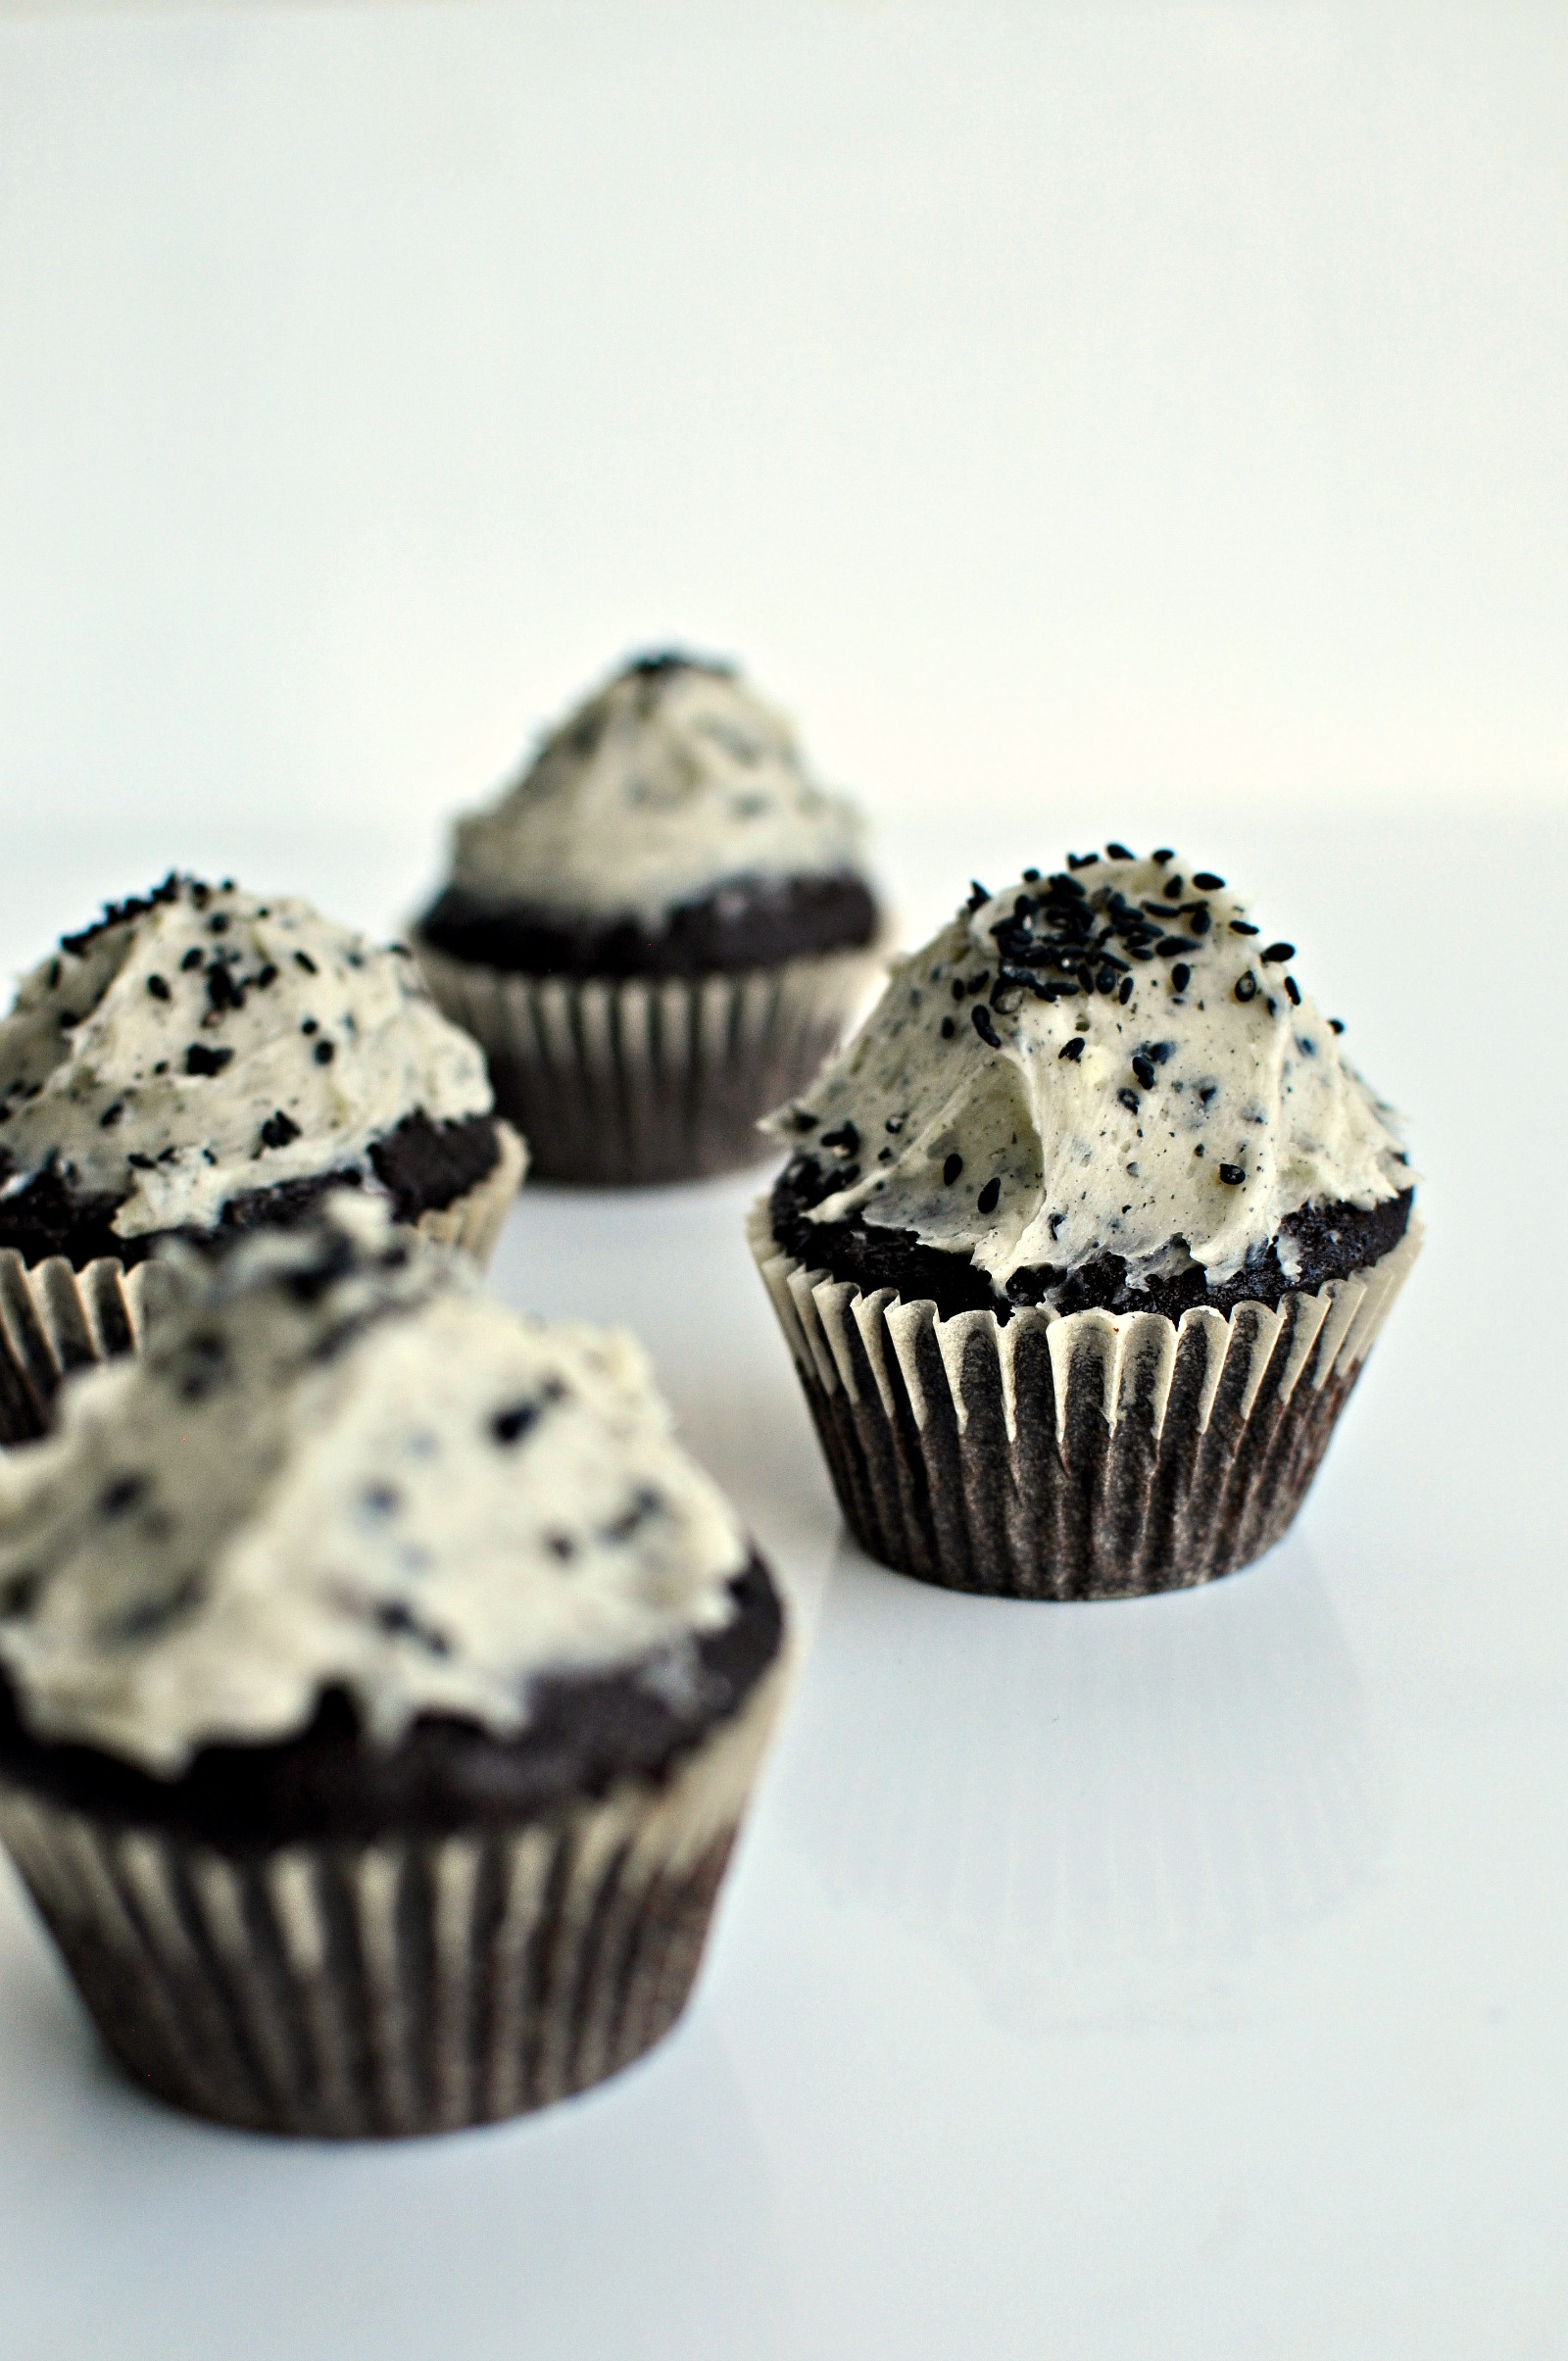 Black Sesame Chocolate Cupcakes Recipe